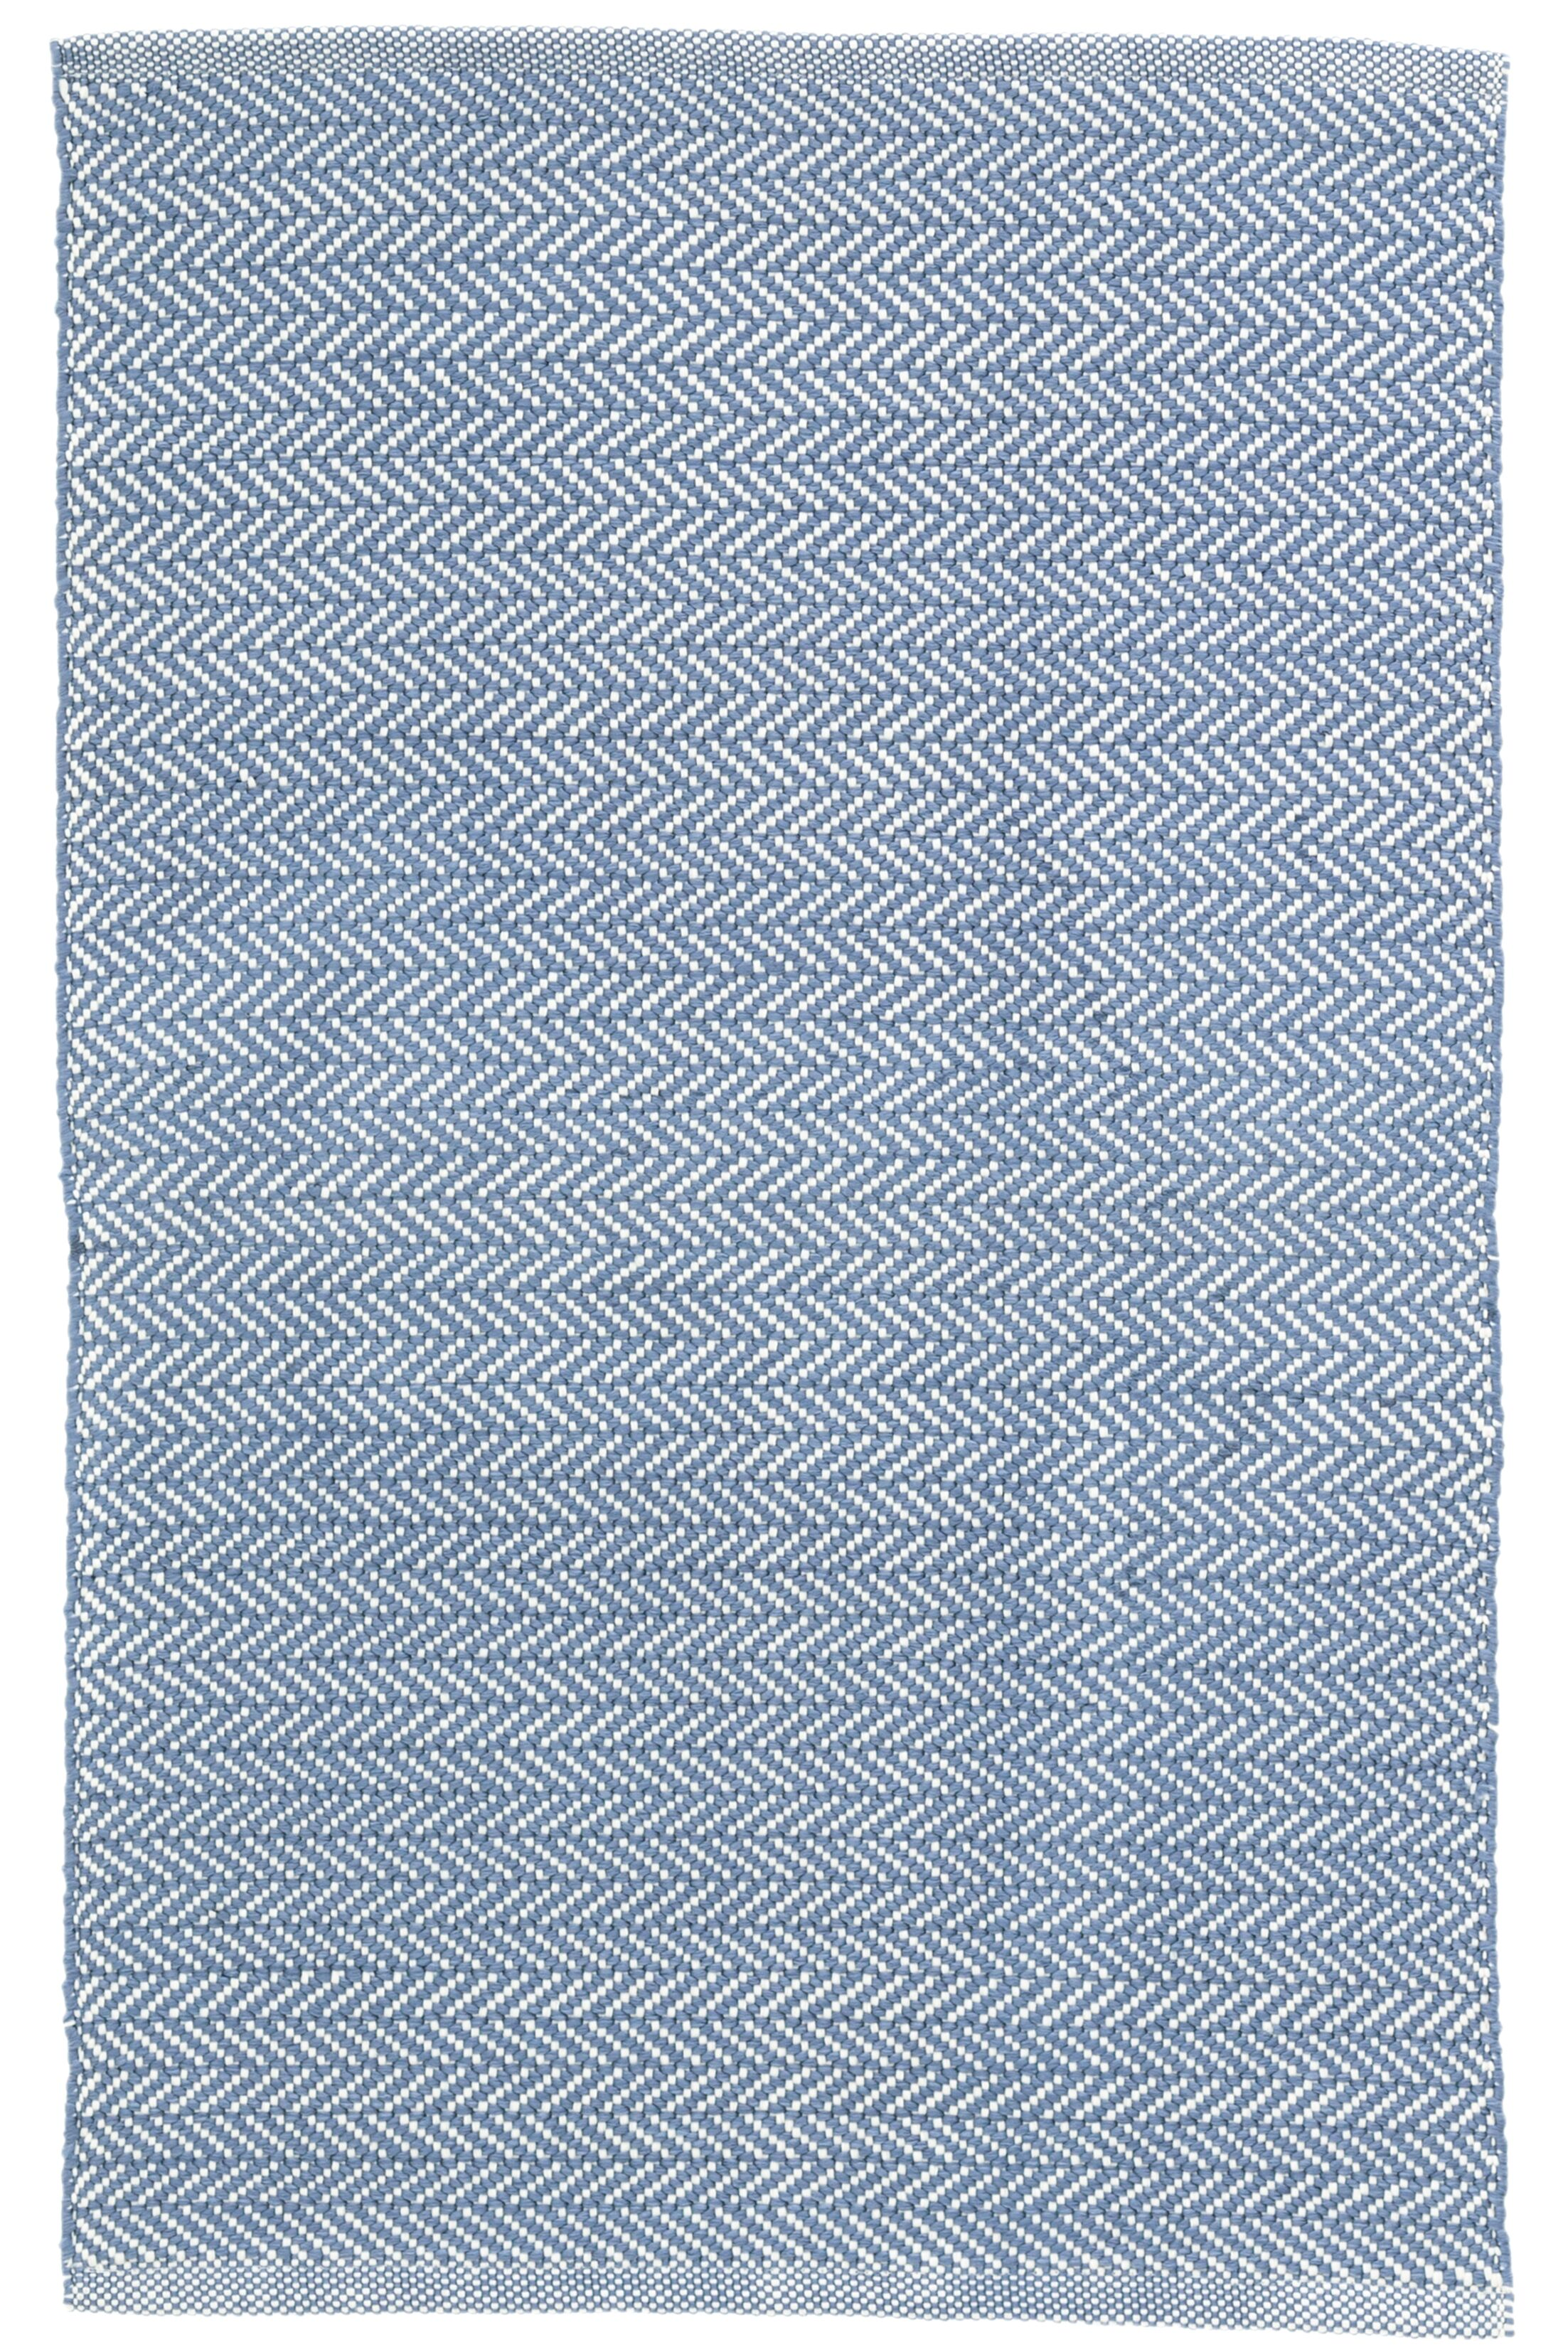 Herringbone Denim Blue Indoor/Outdoor Area Rug Rug Size: 3' x 5'